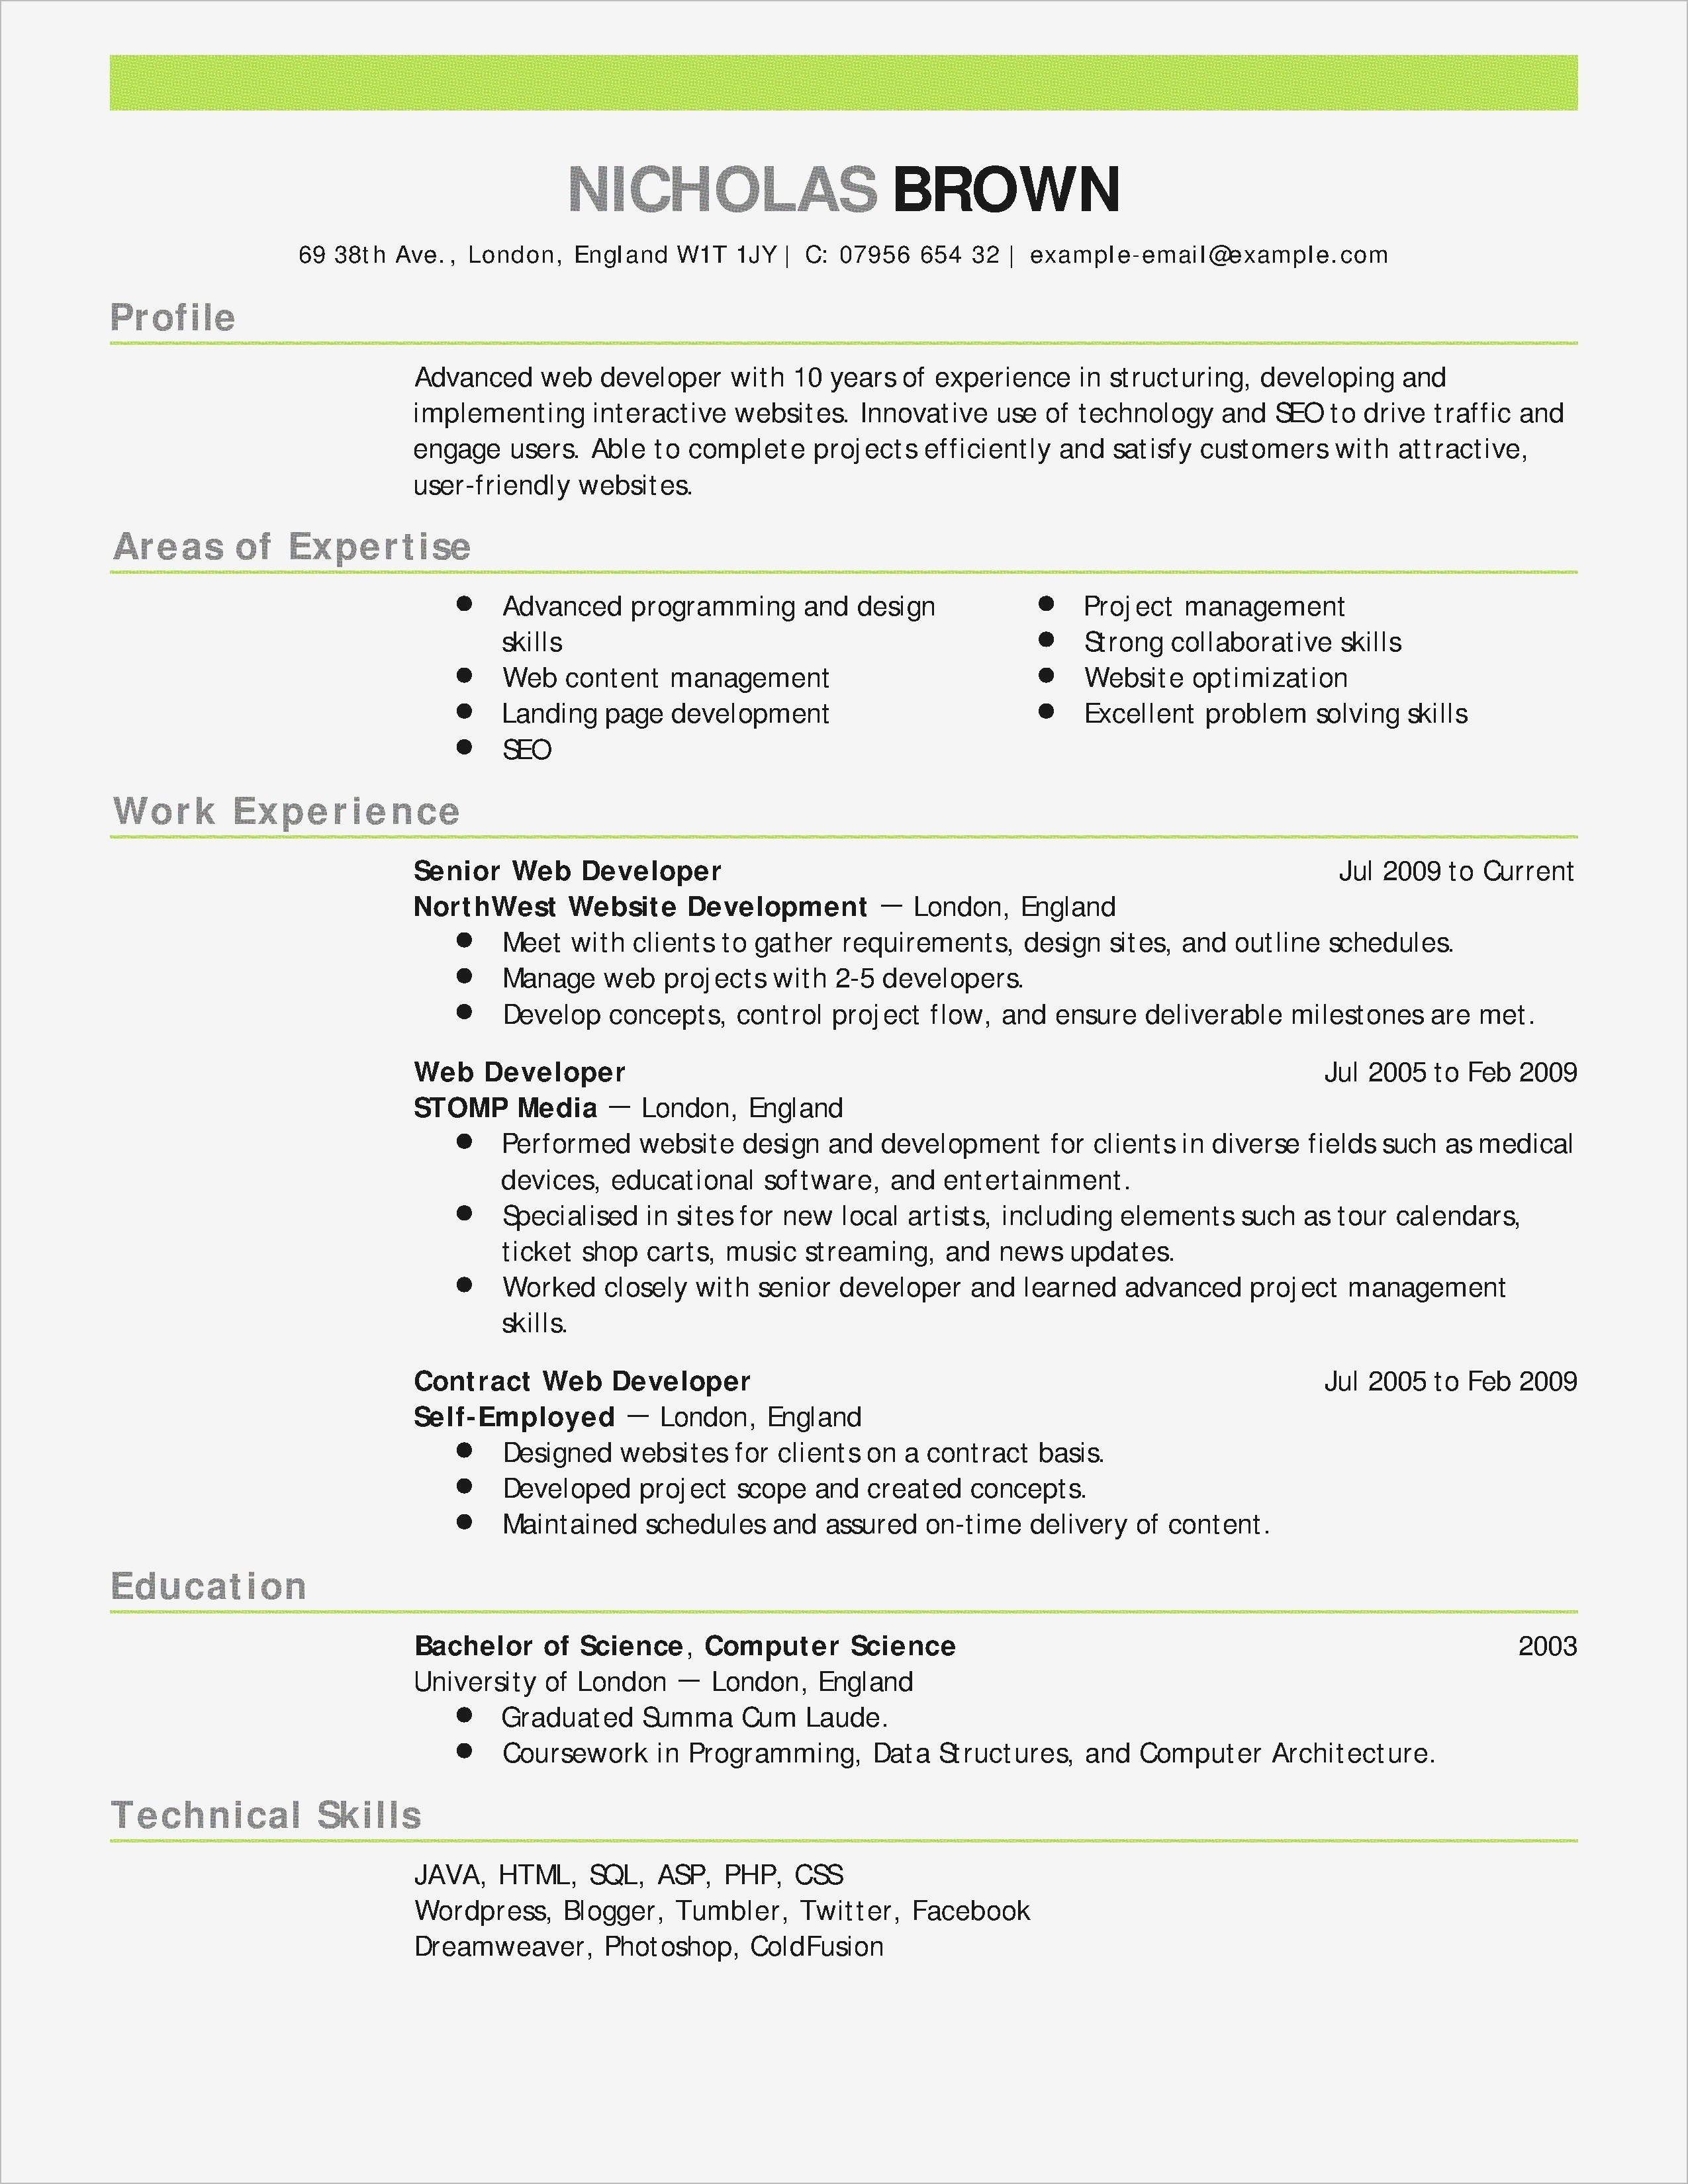 Resume Writing Service - Cover Page for Resume New Elegant Cover Letter Writing Service